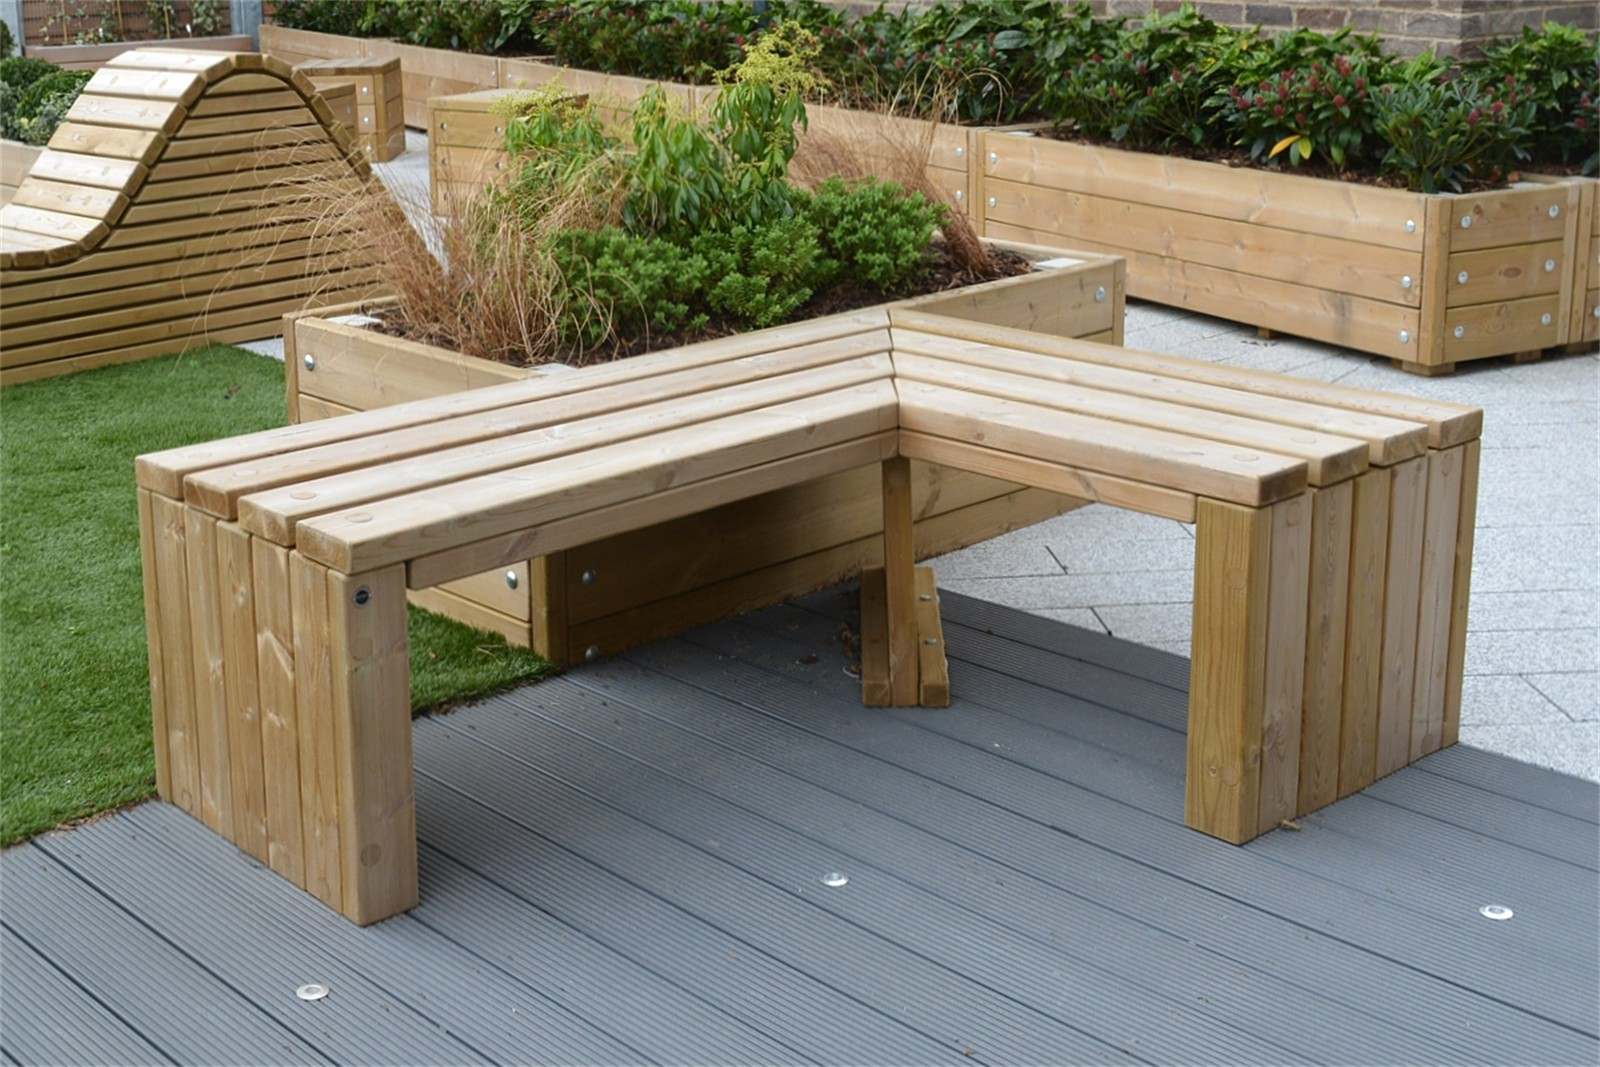 69s04 - Rochford 565 timber mitred bench